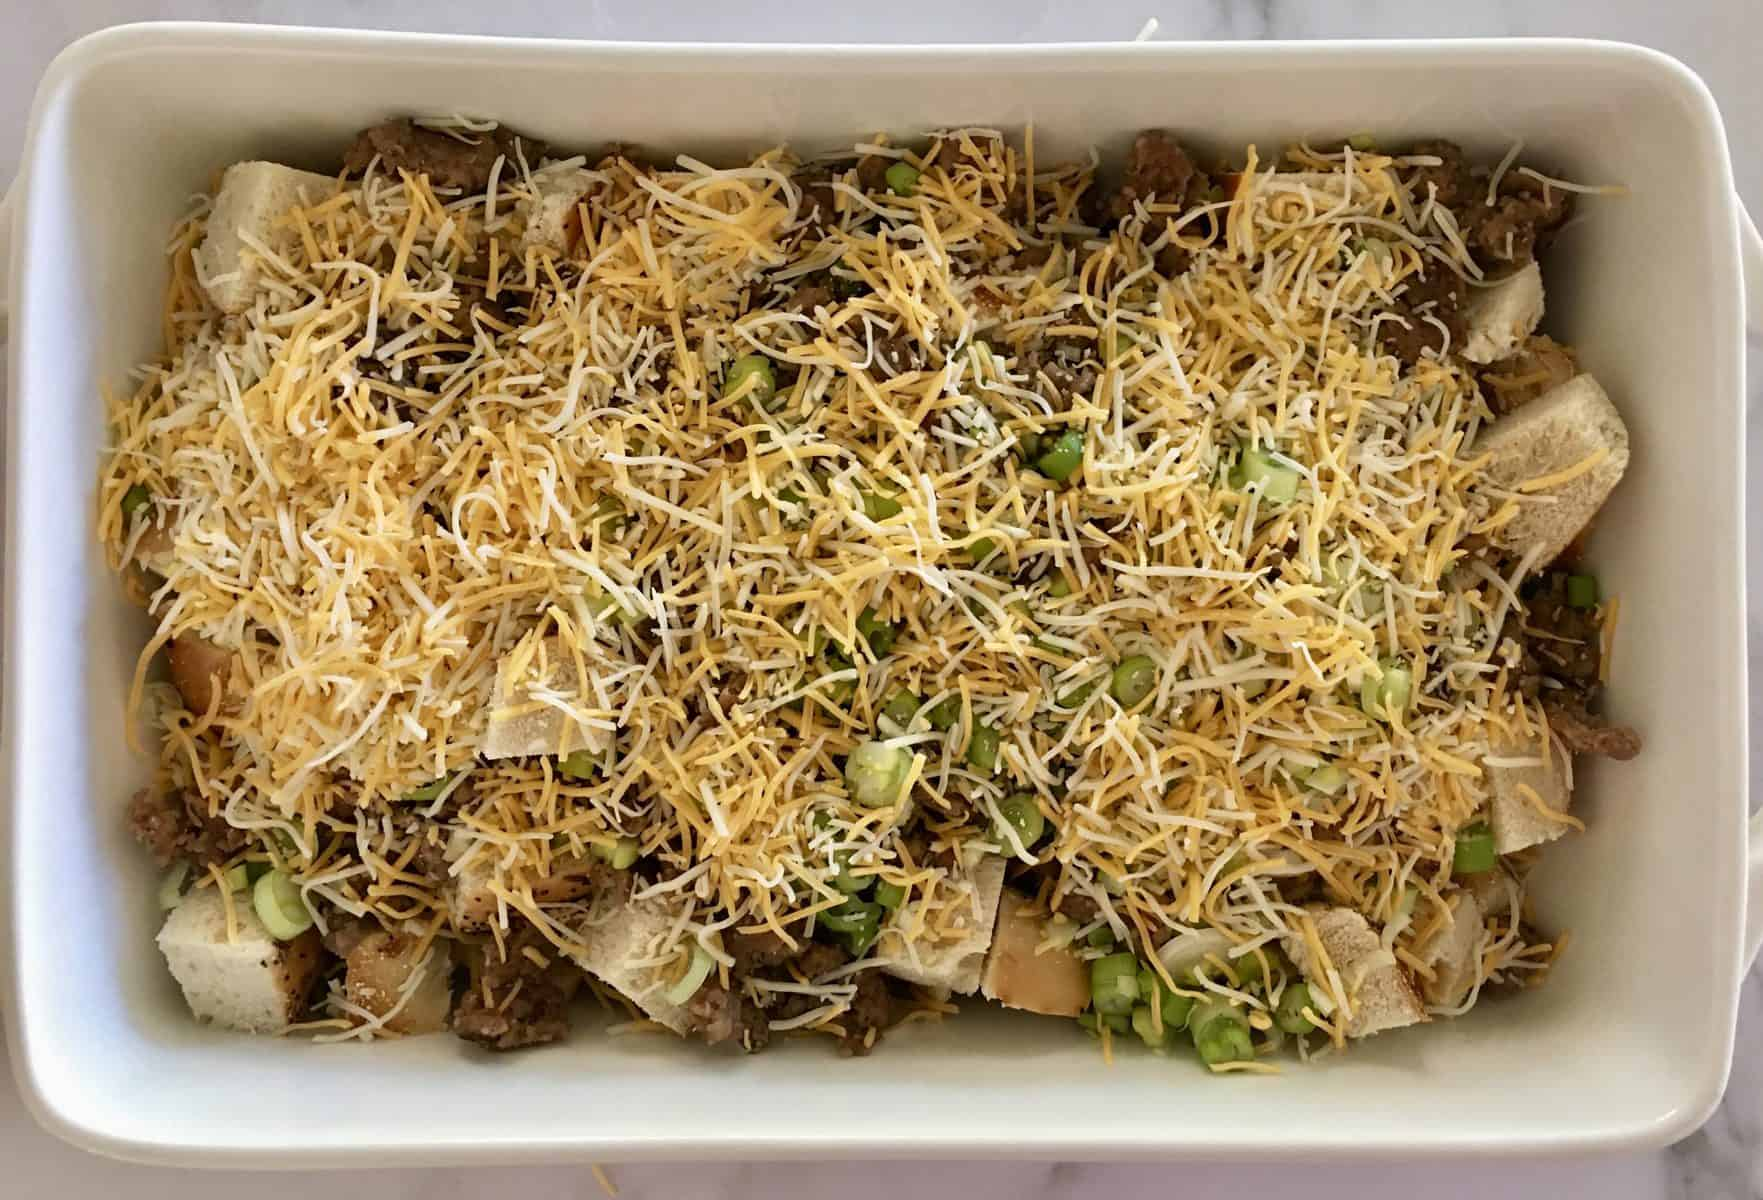 Breakfast Casserole filled with bread, meat, green onions, and cheddar cheese.